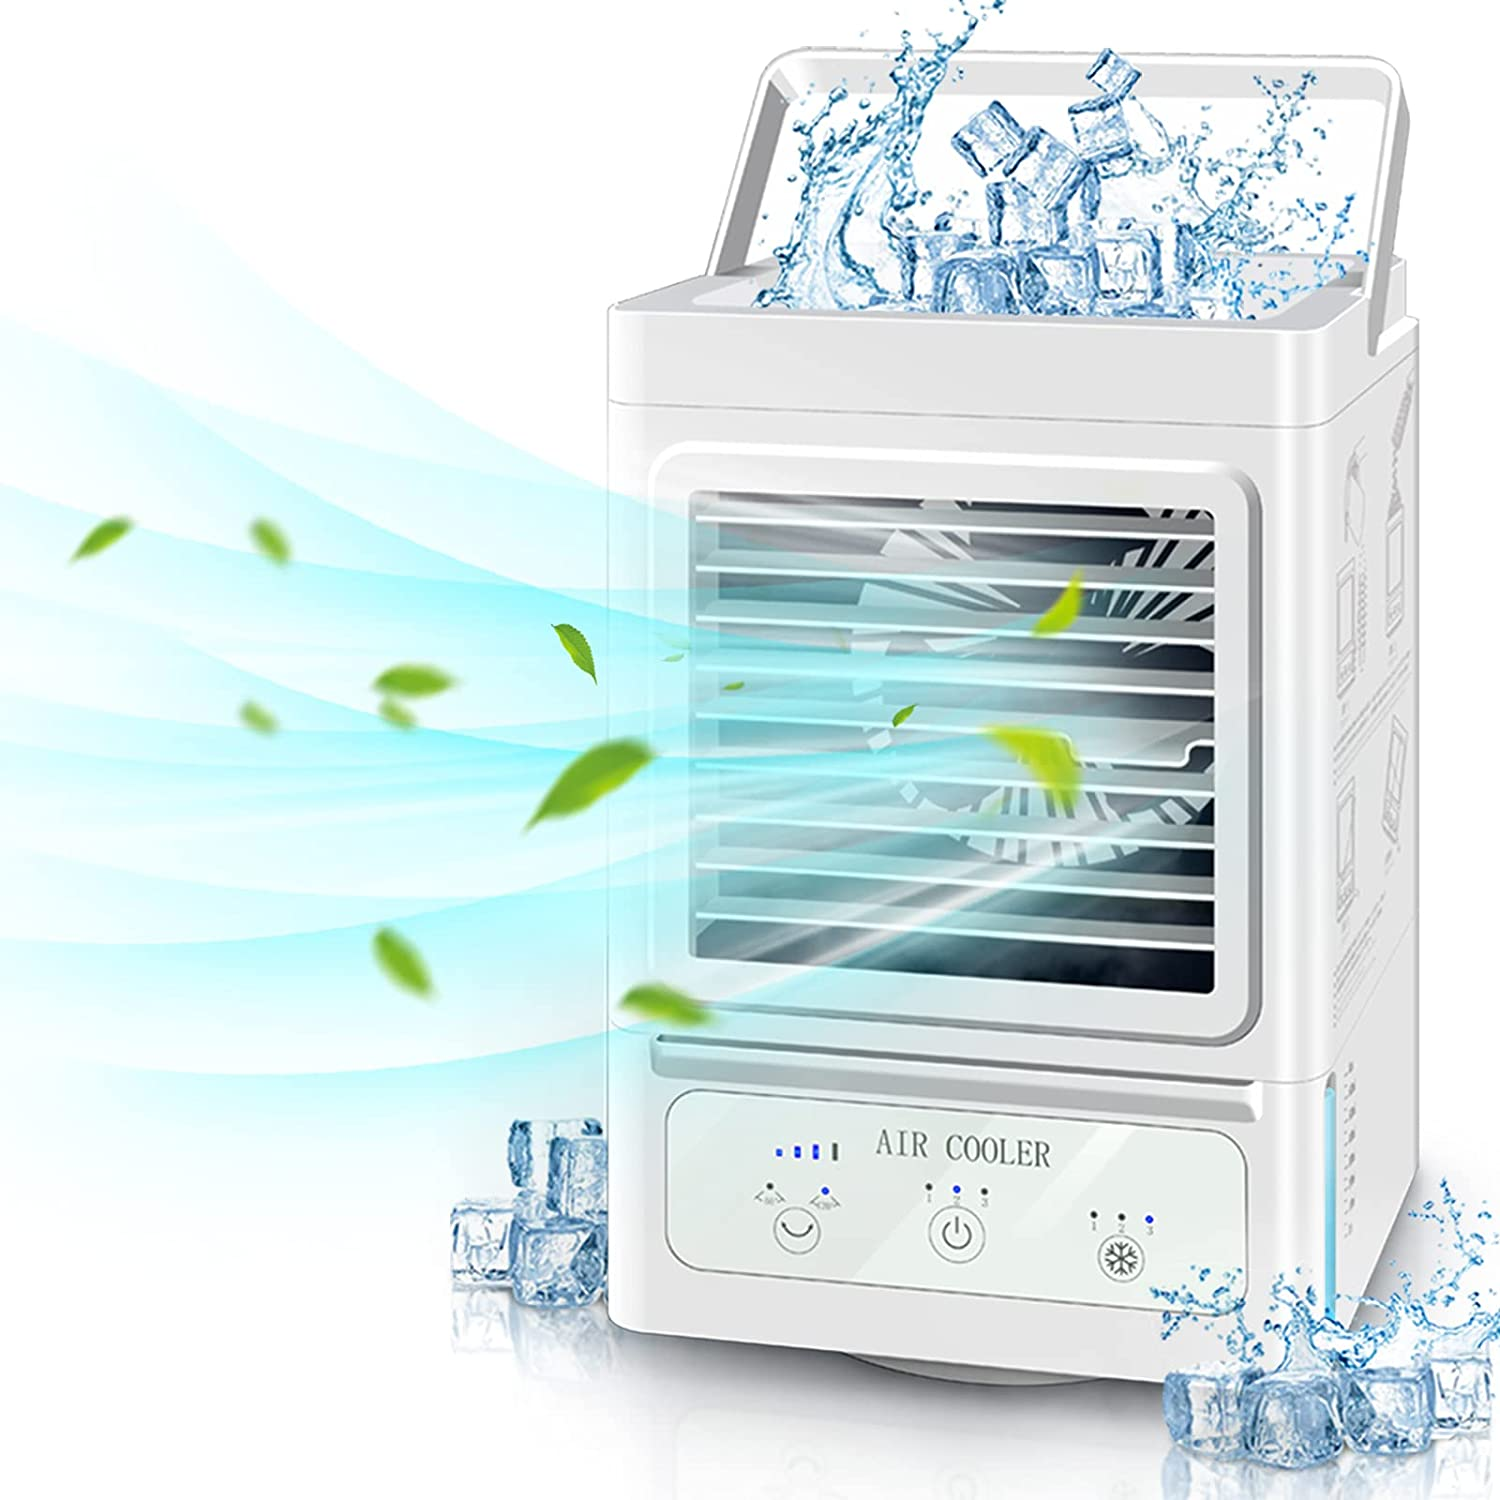 Personal Air Cooler,Rechargeable Battery Operated 60°&120° Auto Oscillation,Portable Air Conditioner Fan with 3 Wind Speeds & 3 Refrigeration,Ultra Quite Ice Cooler Fan for Home Bedroom Office Outdoor